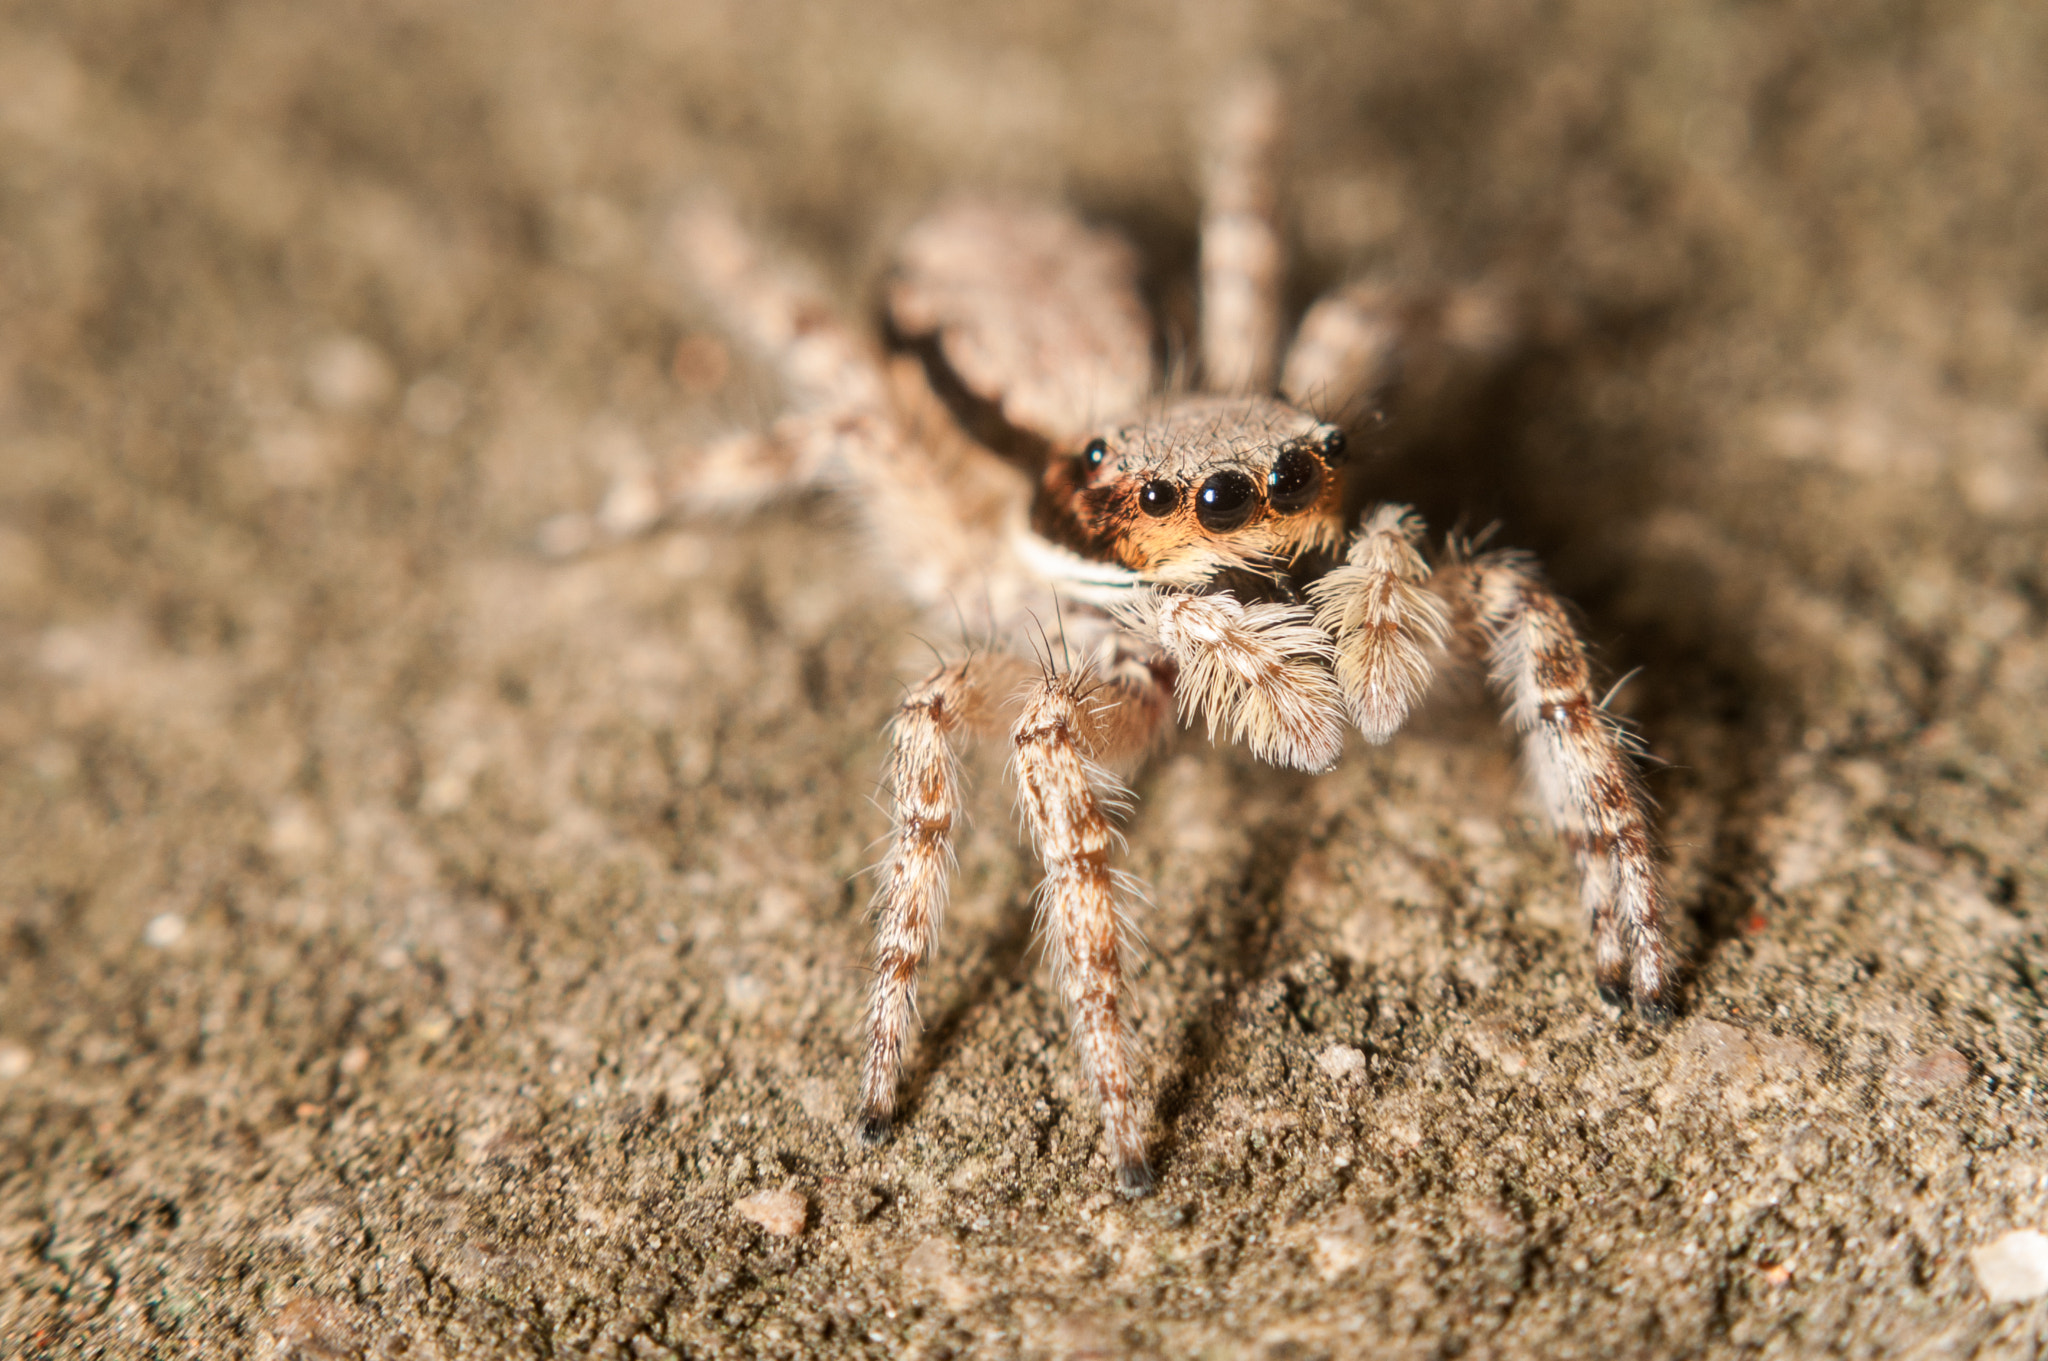 Photograph Spider portrait by Luan Nguyen on 500px